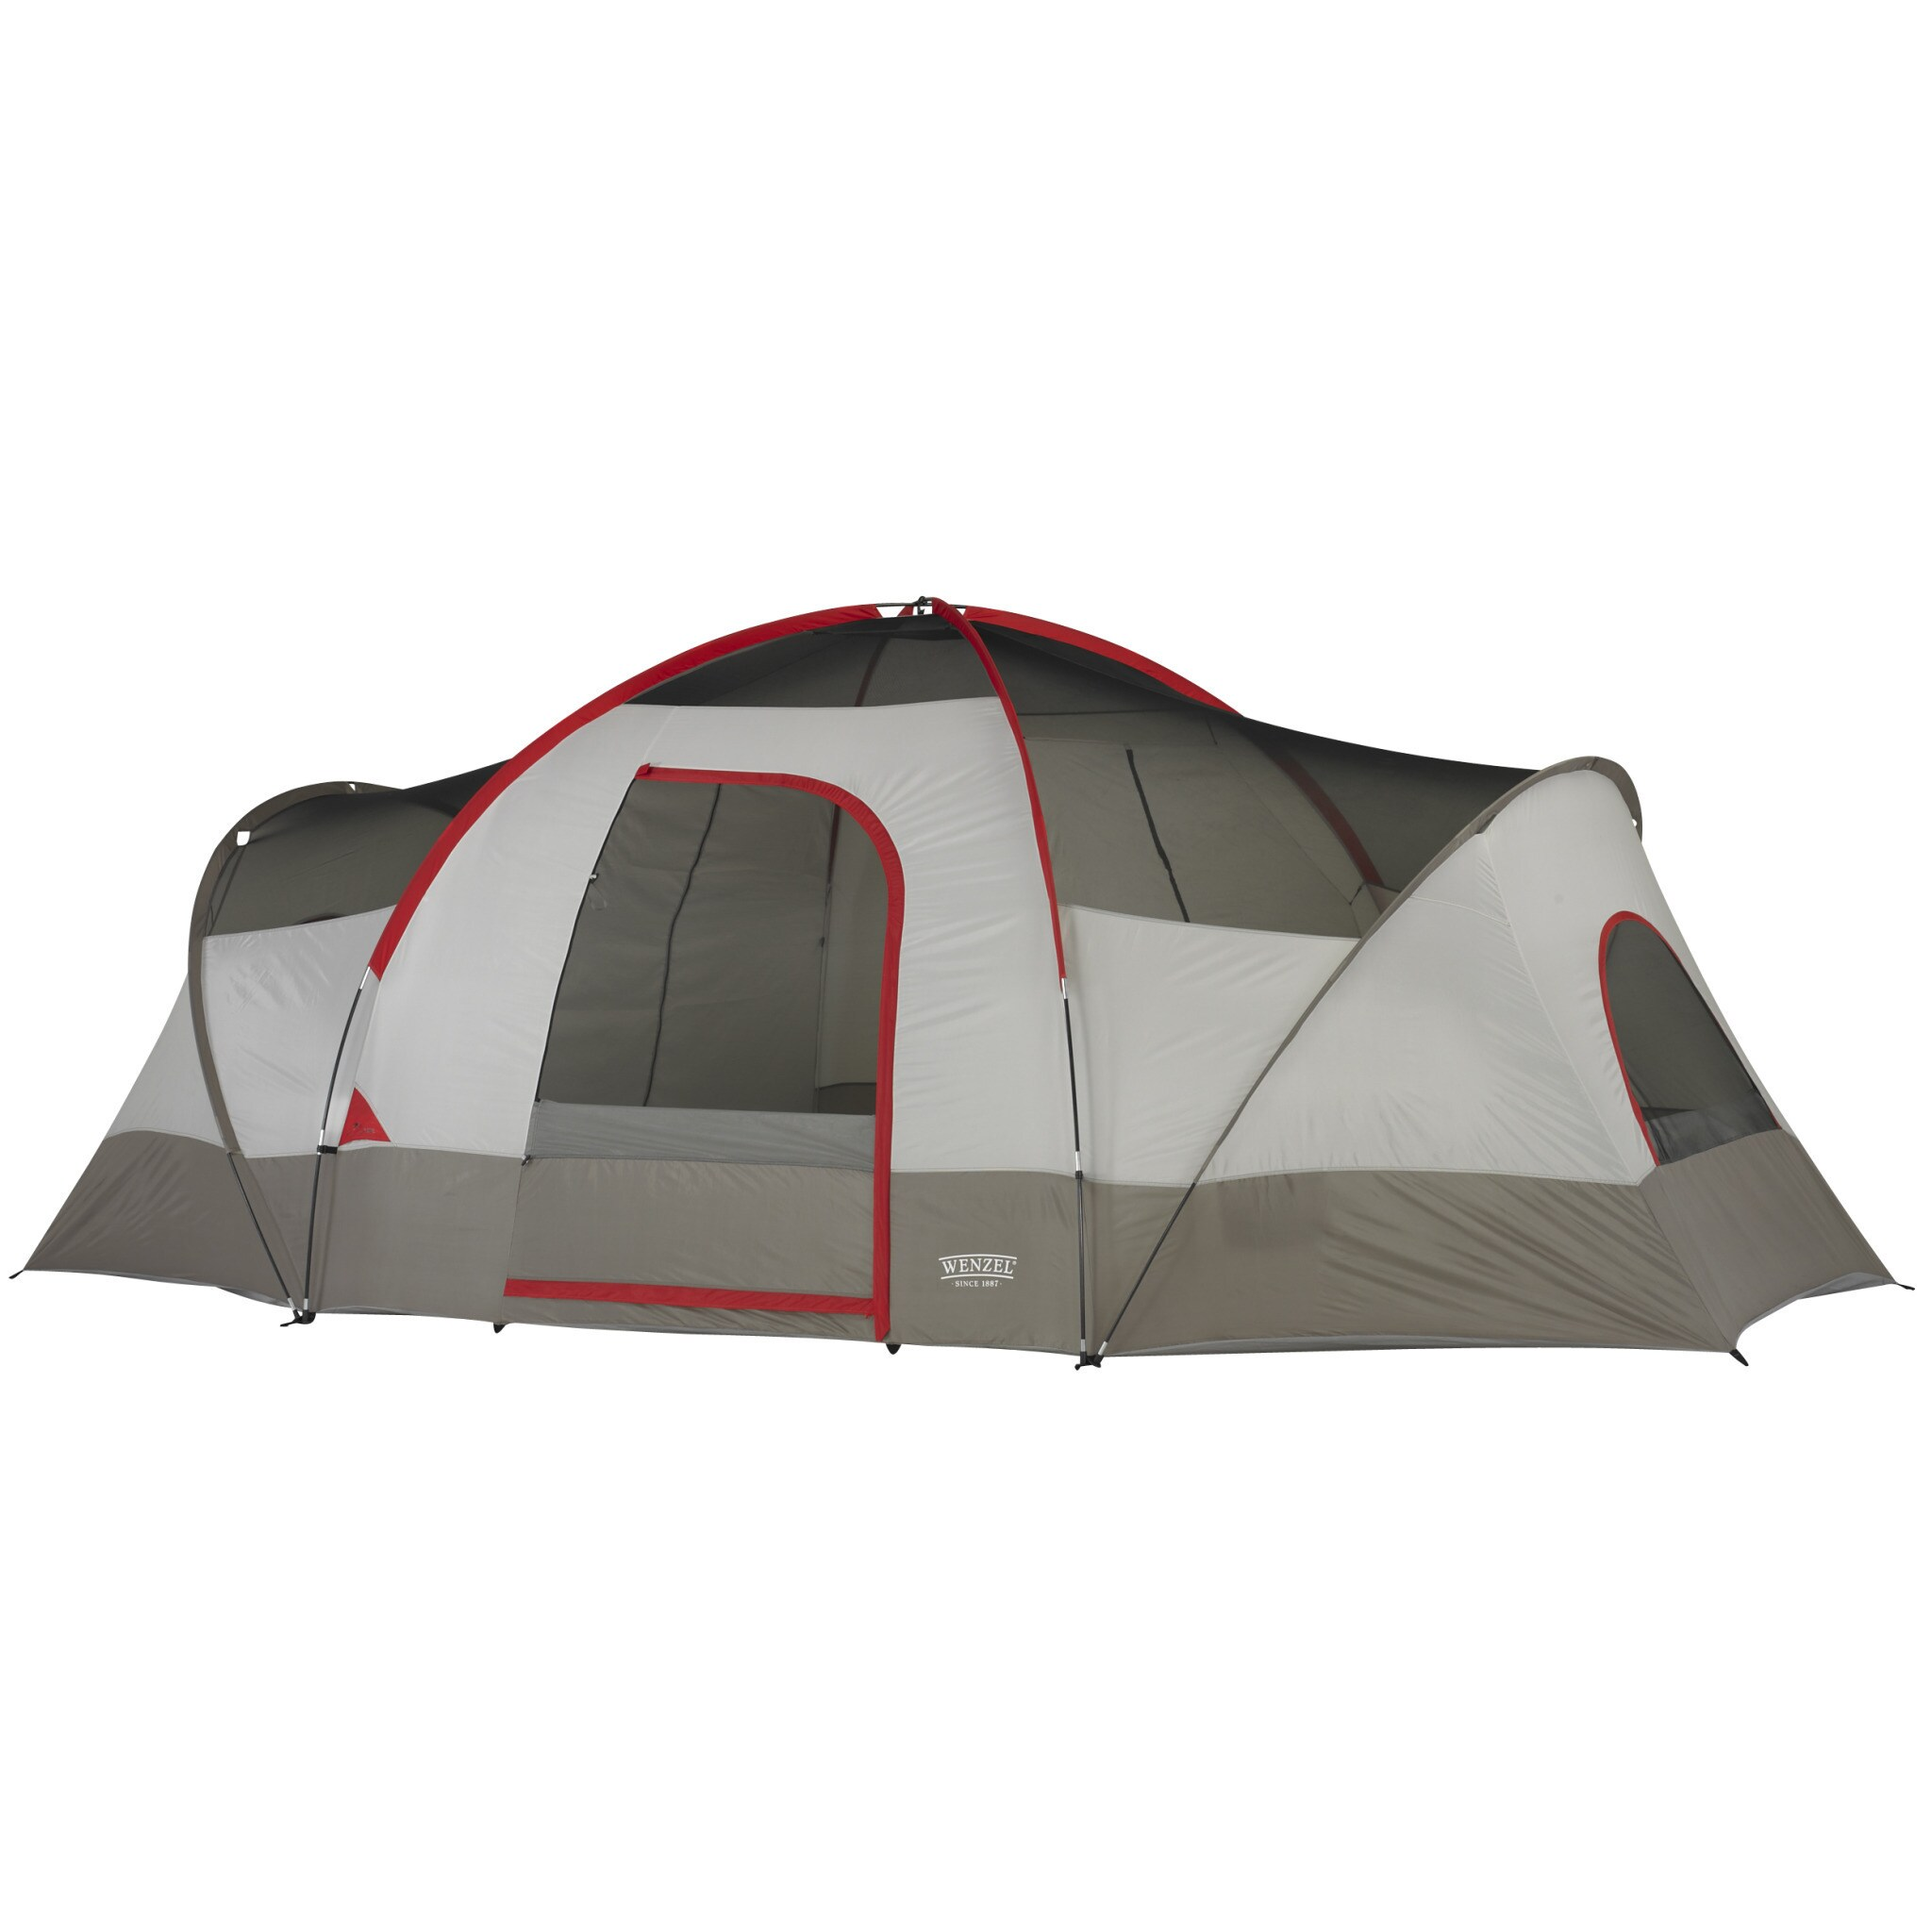 Wenzel Great Basin 10-person 3-room Tent - Free Shipping Today - Overstock.com - 16751921  sc 1 st  Overstock.com & Wenzel Great Basin 10-person 3-room Tent - Free Shipping Today ...